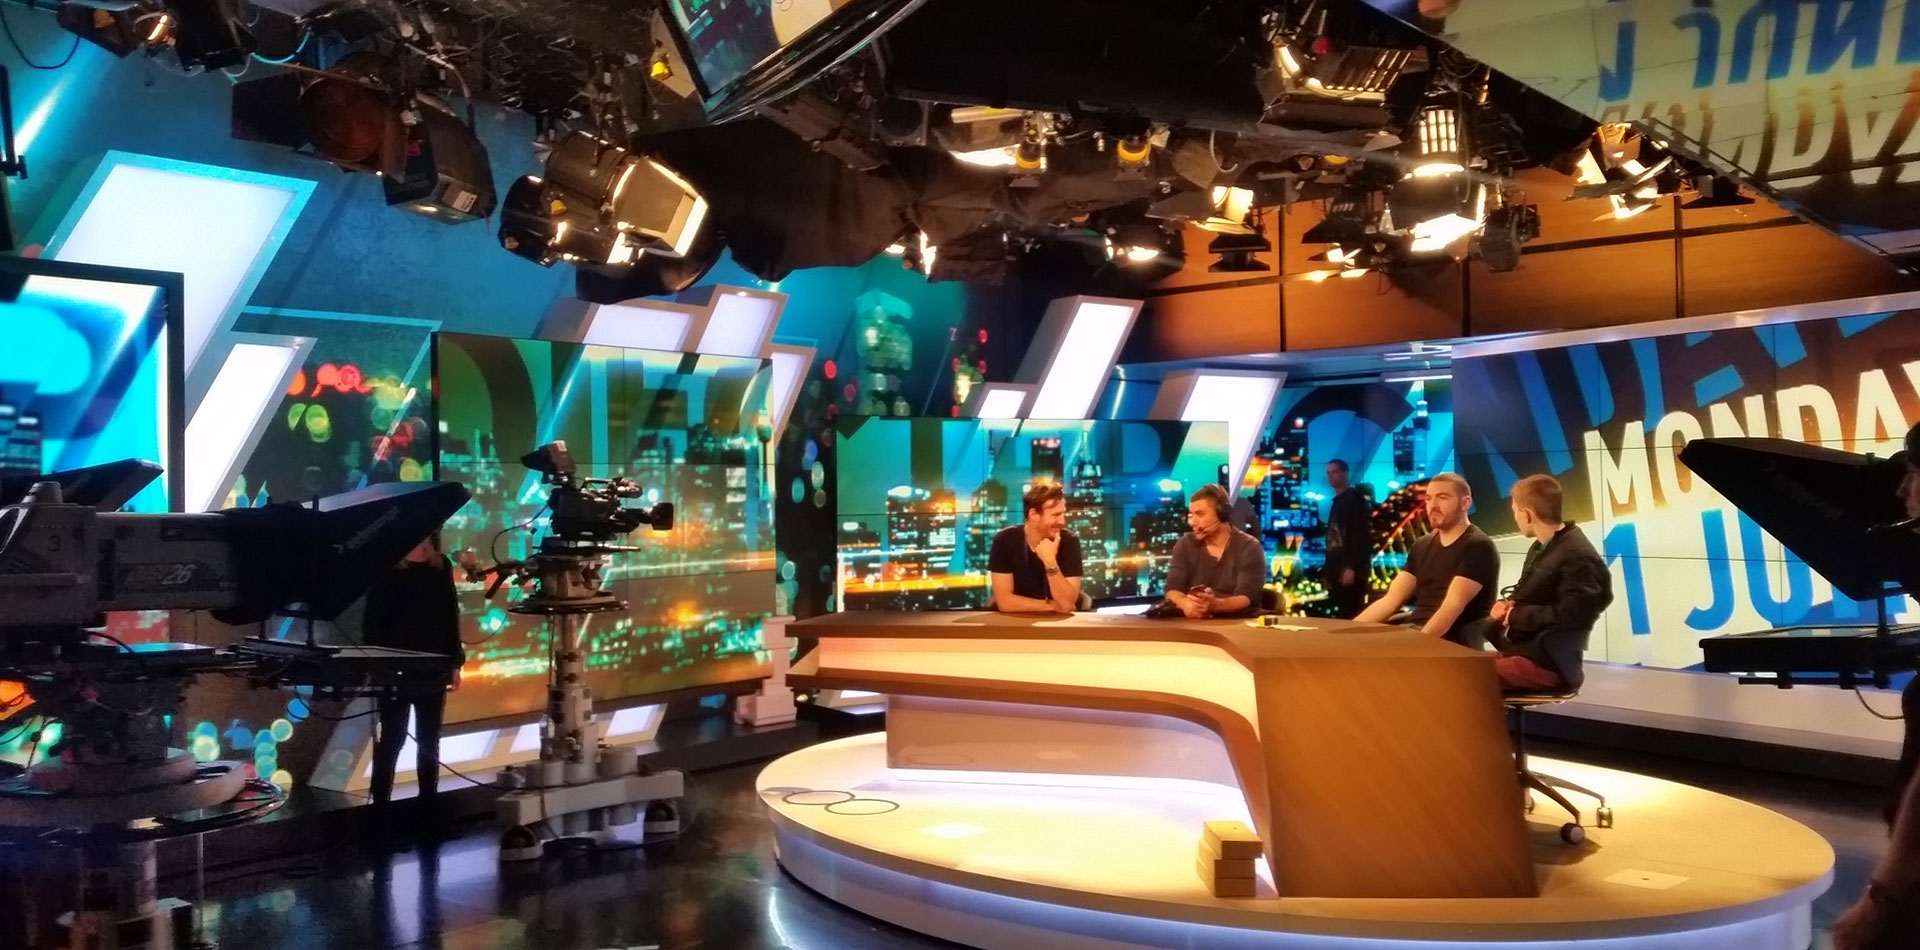 Channel 10's The Project studio space making use of Commercial TVs and Illuminated fabric frames